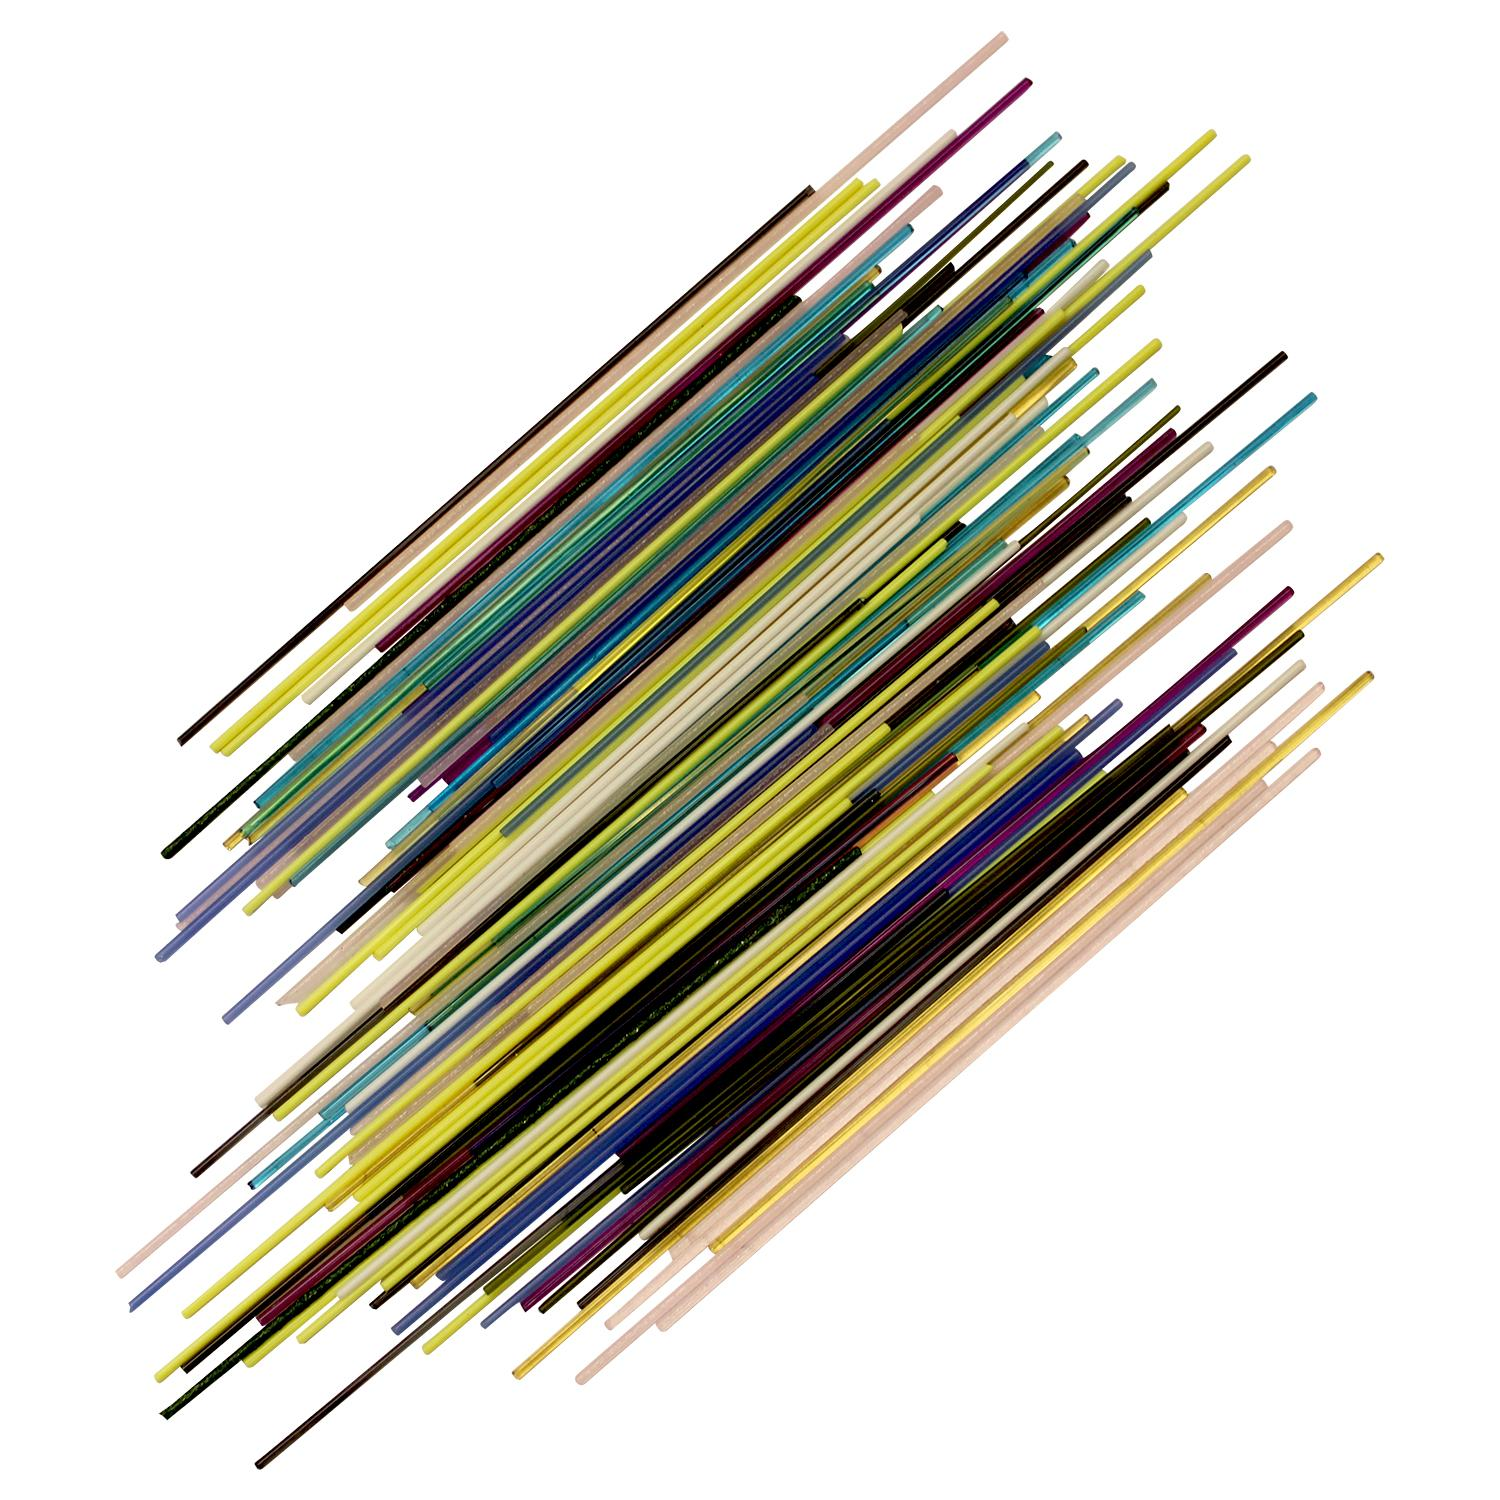 Fuseworks Variety Colors Thin Stringers Assortment, 1-1/2 Oz. Pack - 90 COE